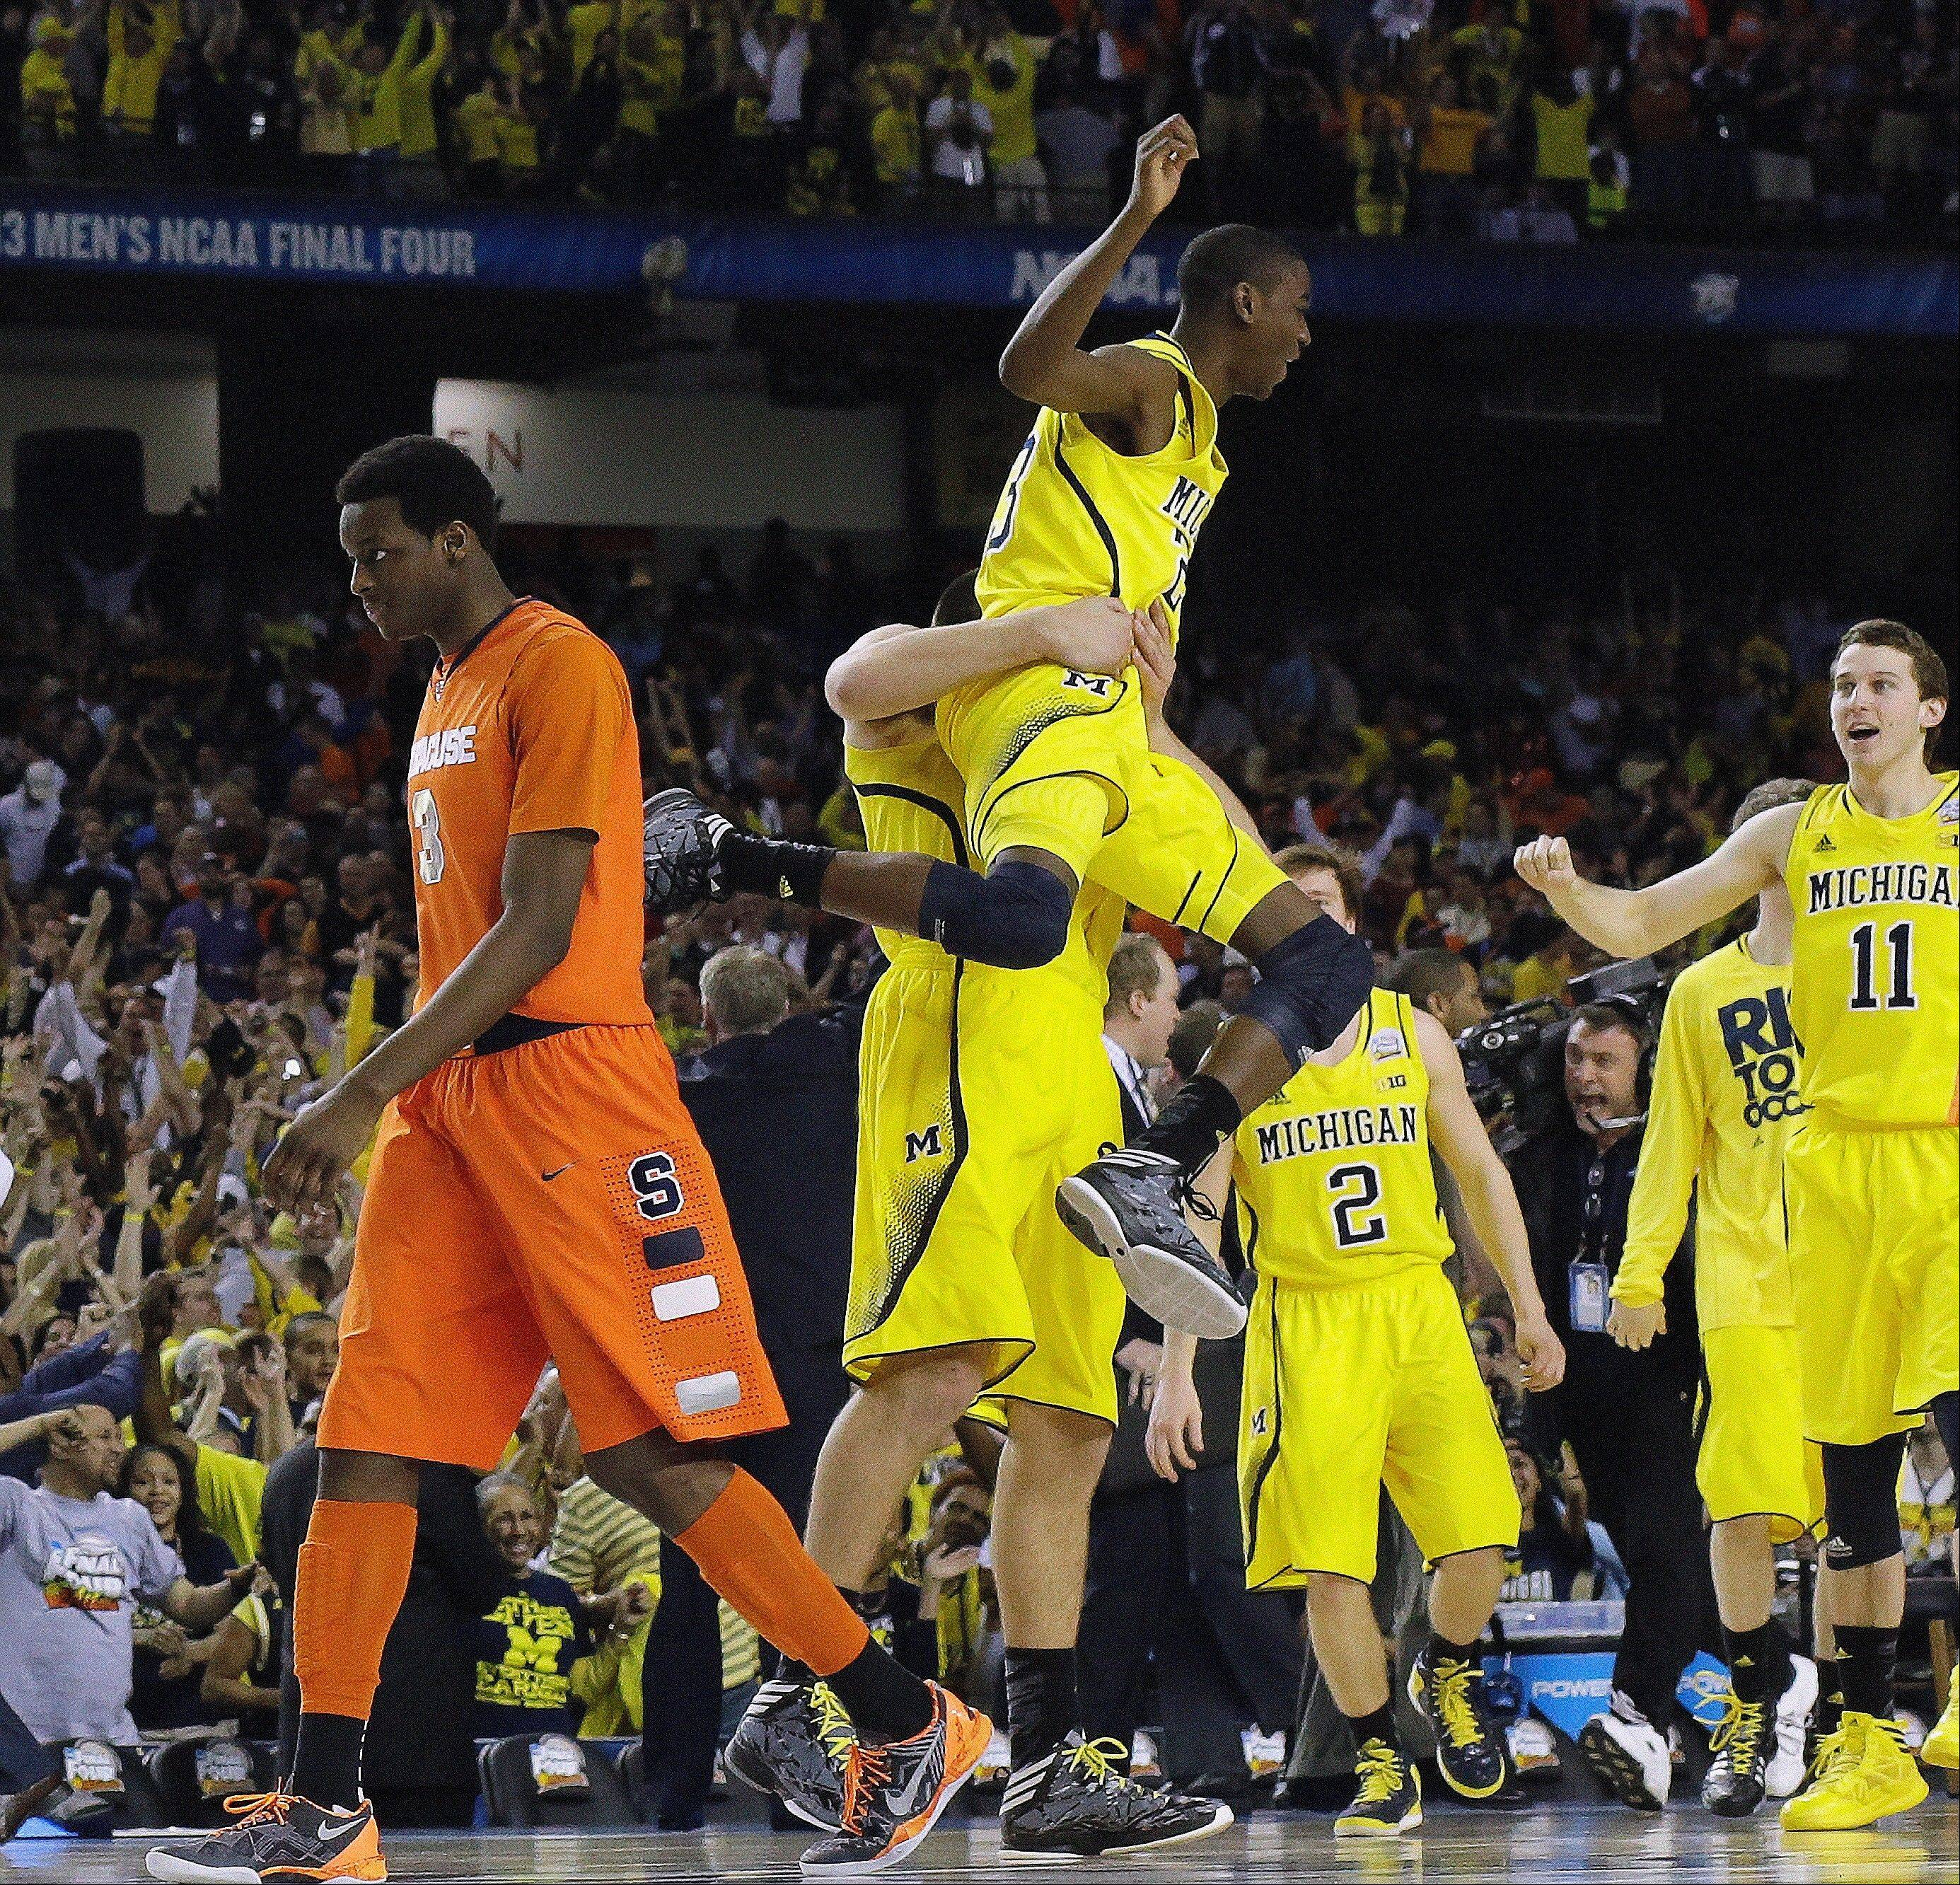 Michigan's Caris LeVert (23) celebrates with team mates as Syracuse's Jerami Grant (3) walks off the court after the Wolverines defeated the Orangemen Saturday to earn a trip to Monday's NCAA title game.